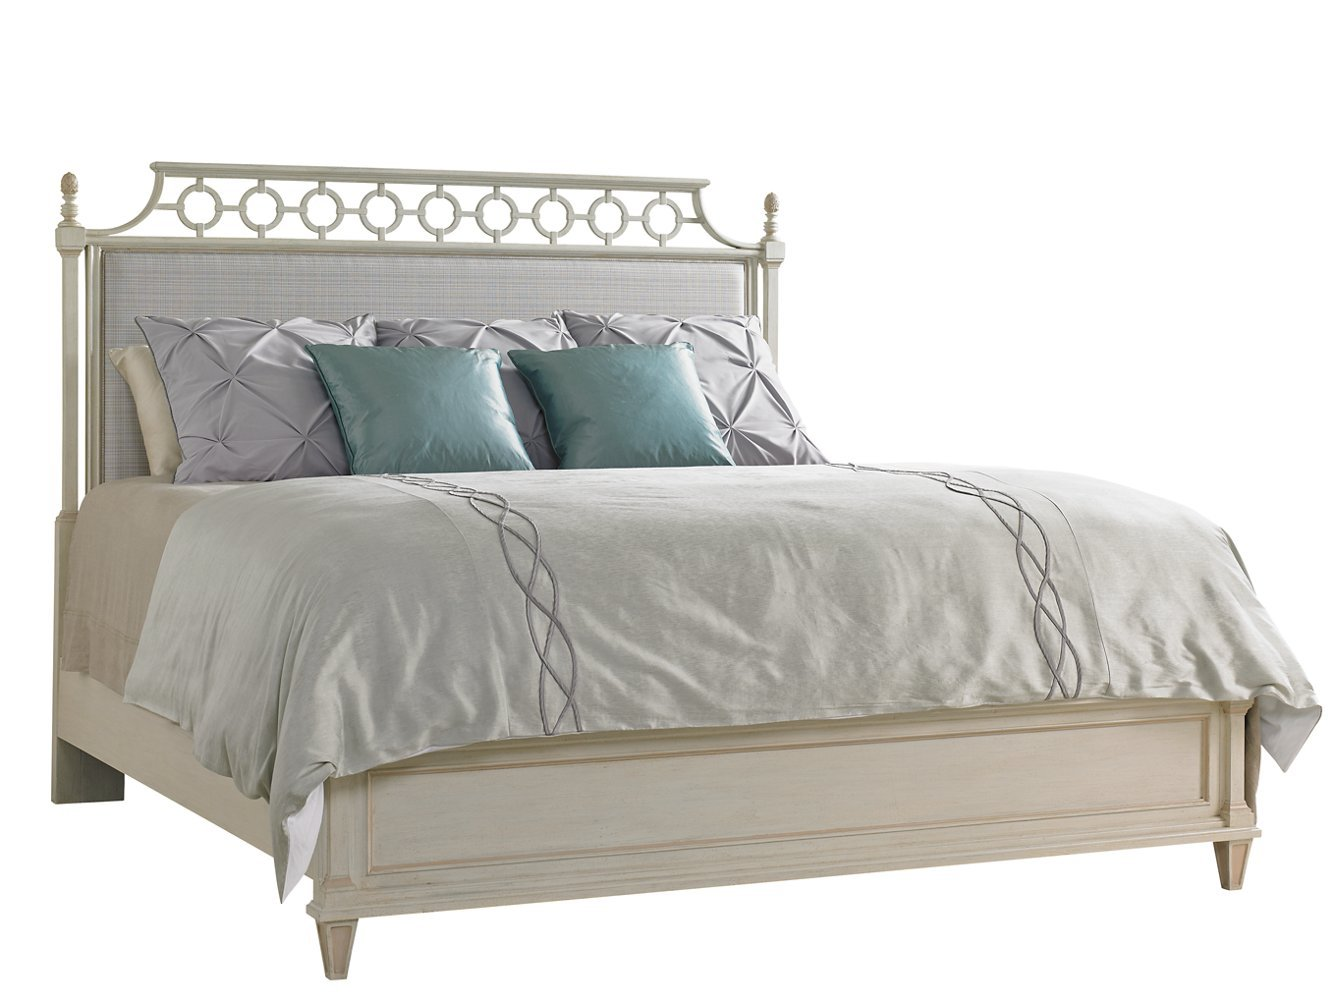 Preserve Upholstered Bed in Orchid by Stanley Furniture